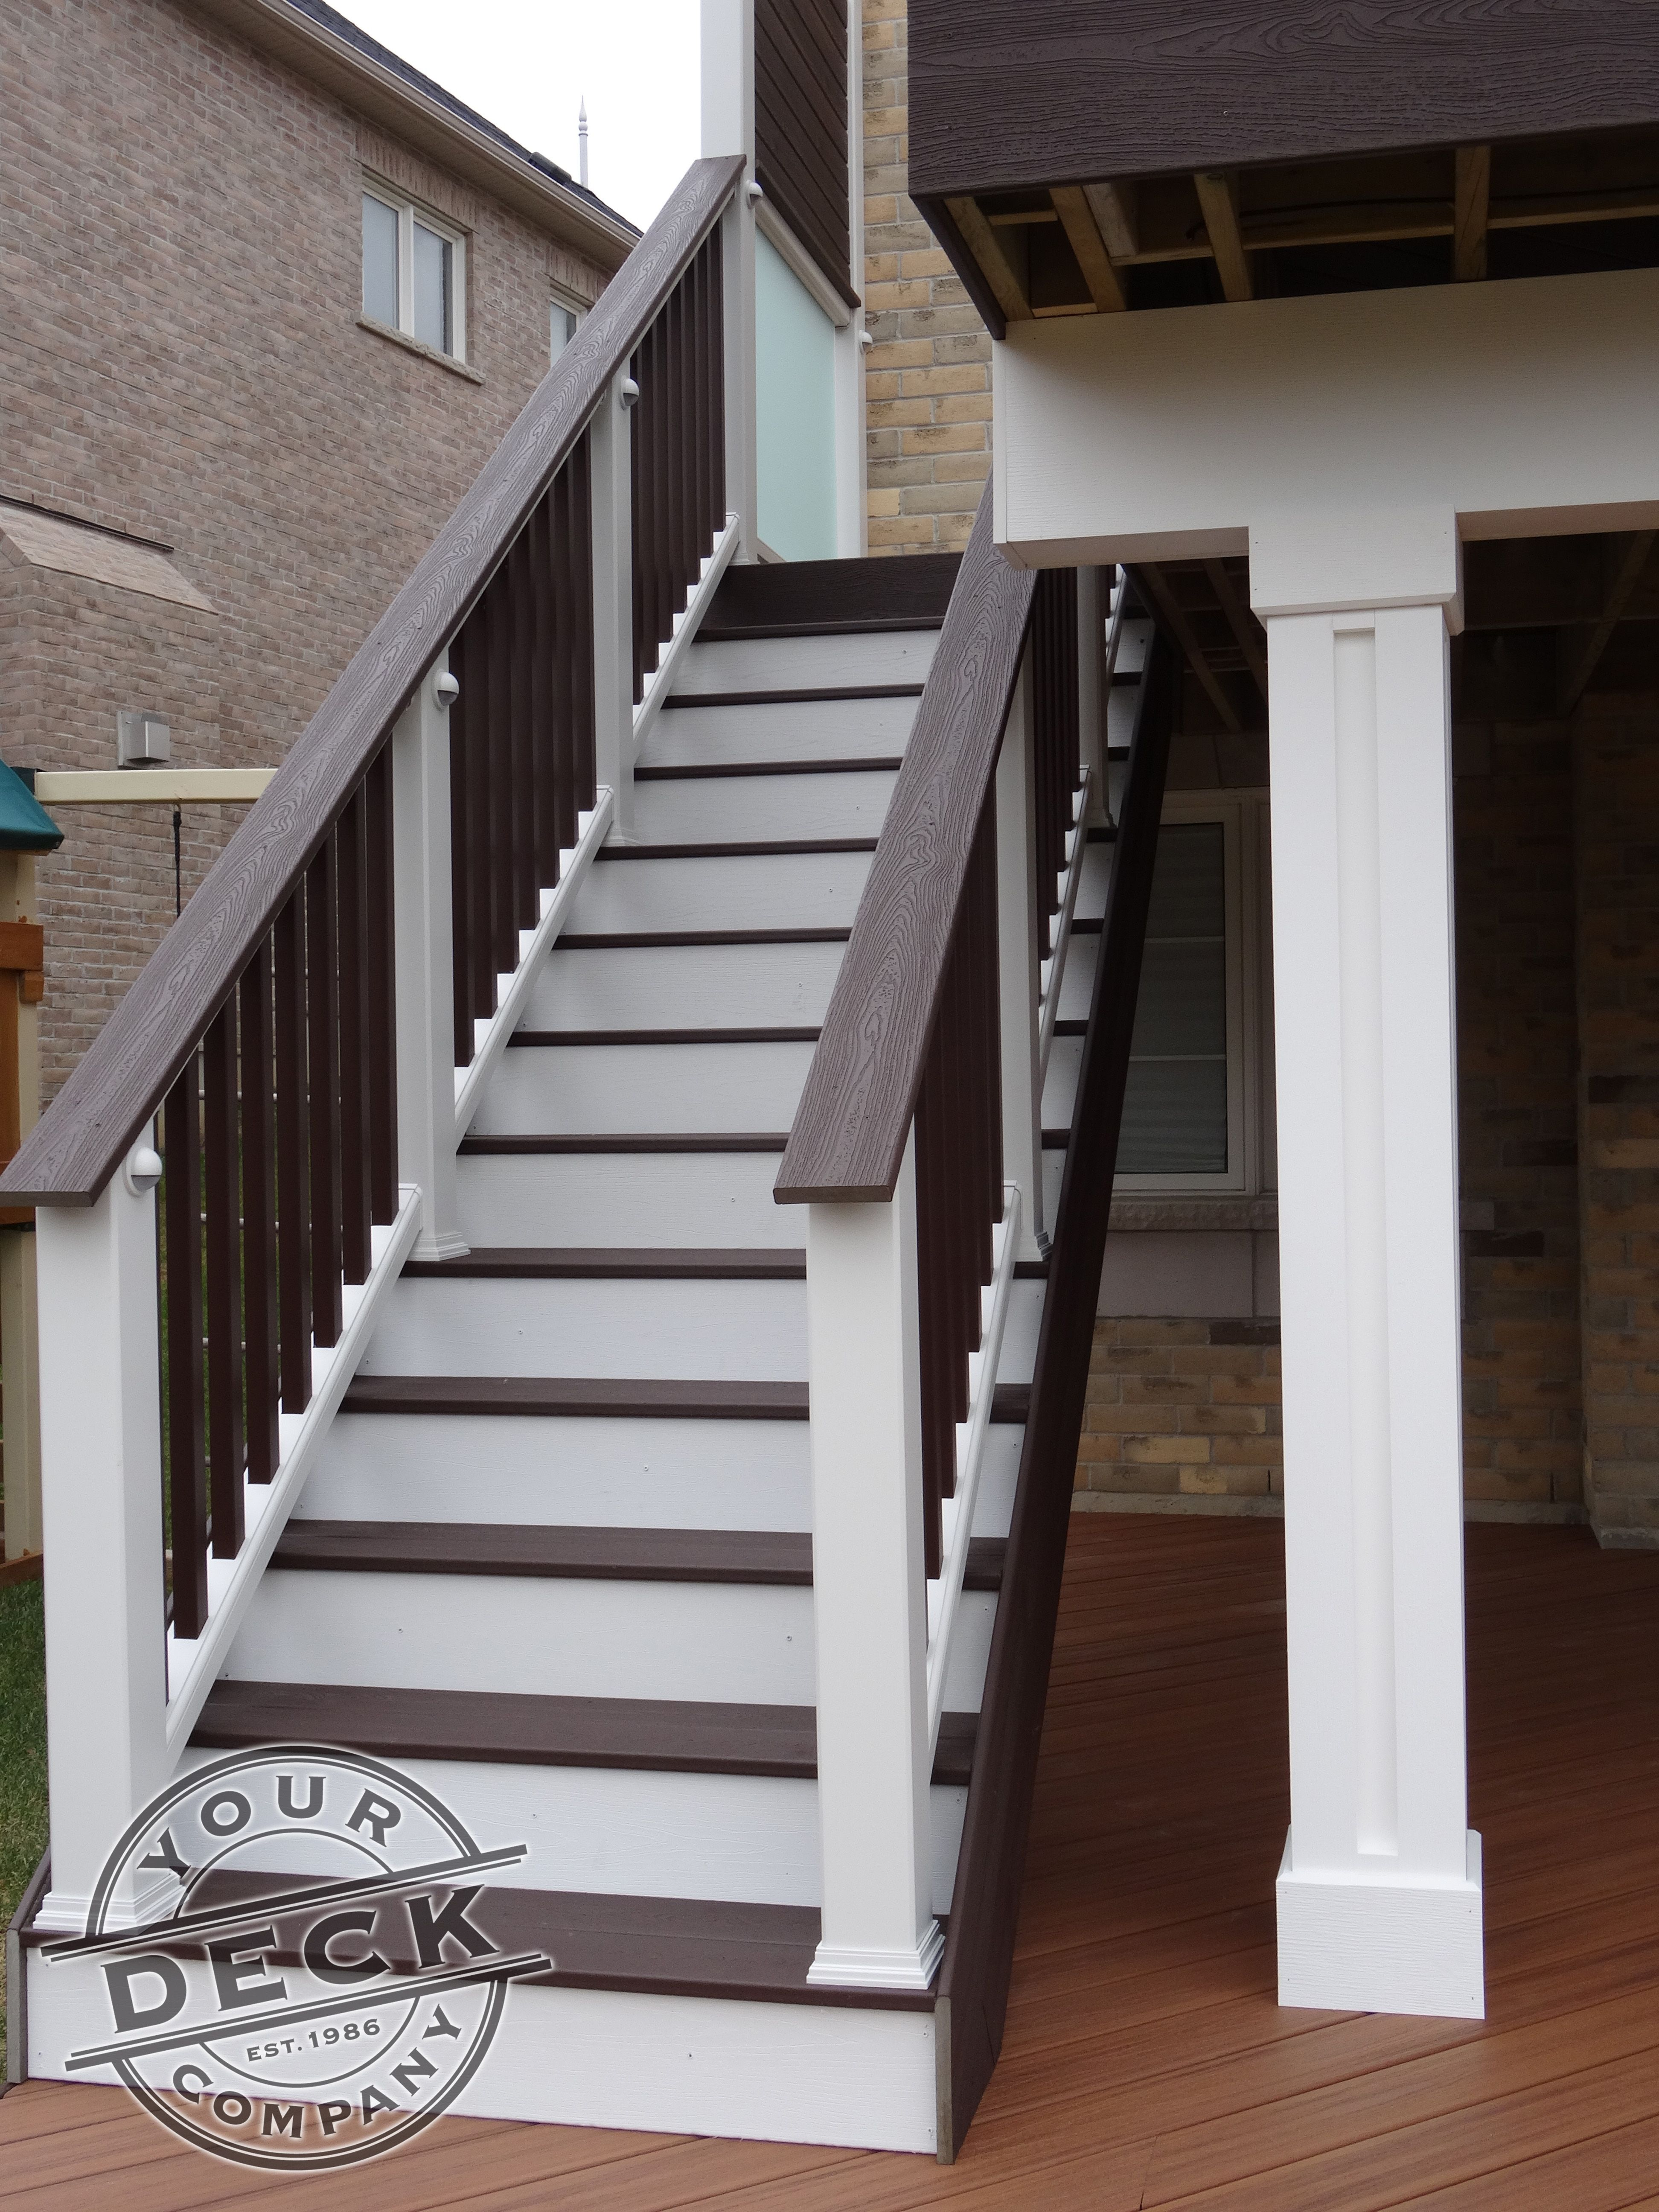 this custom deck was created by your deck company we used a